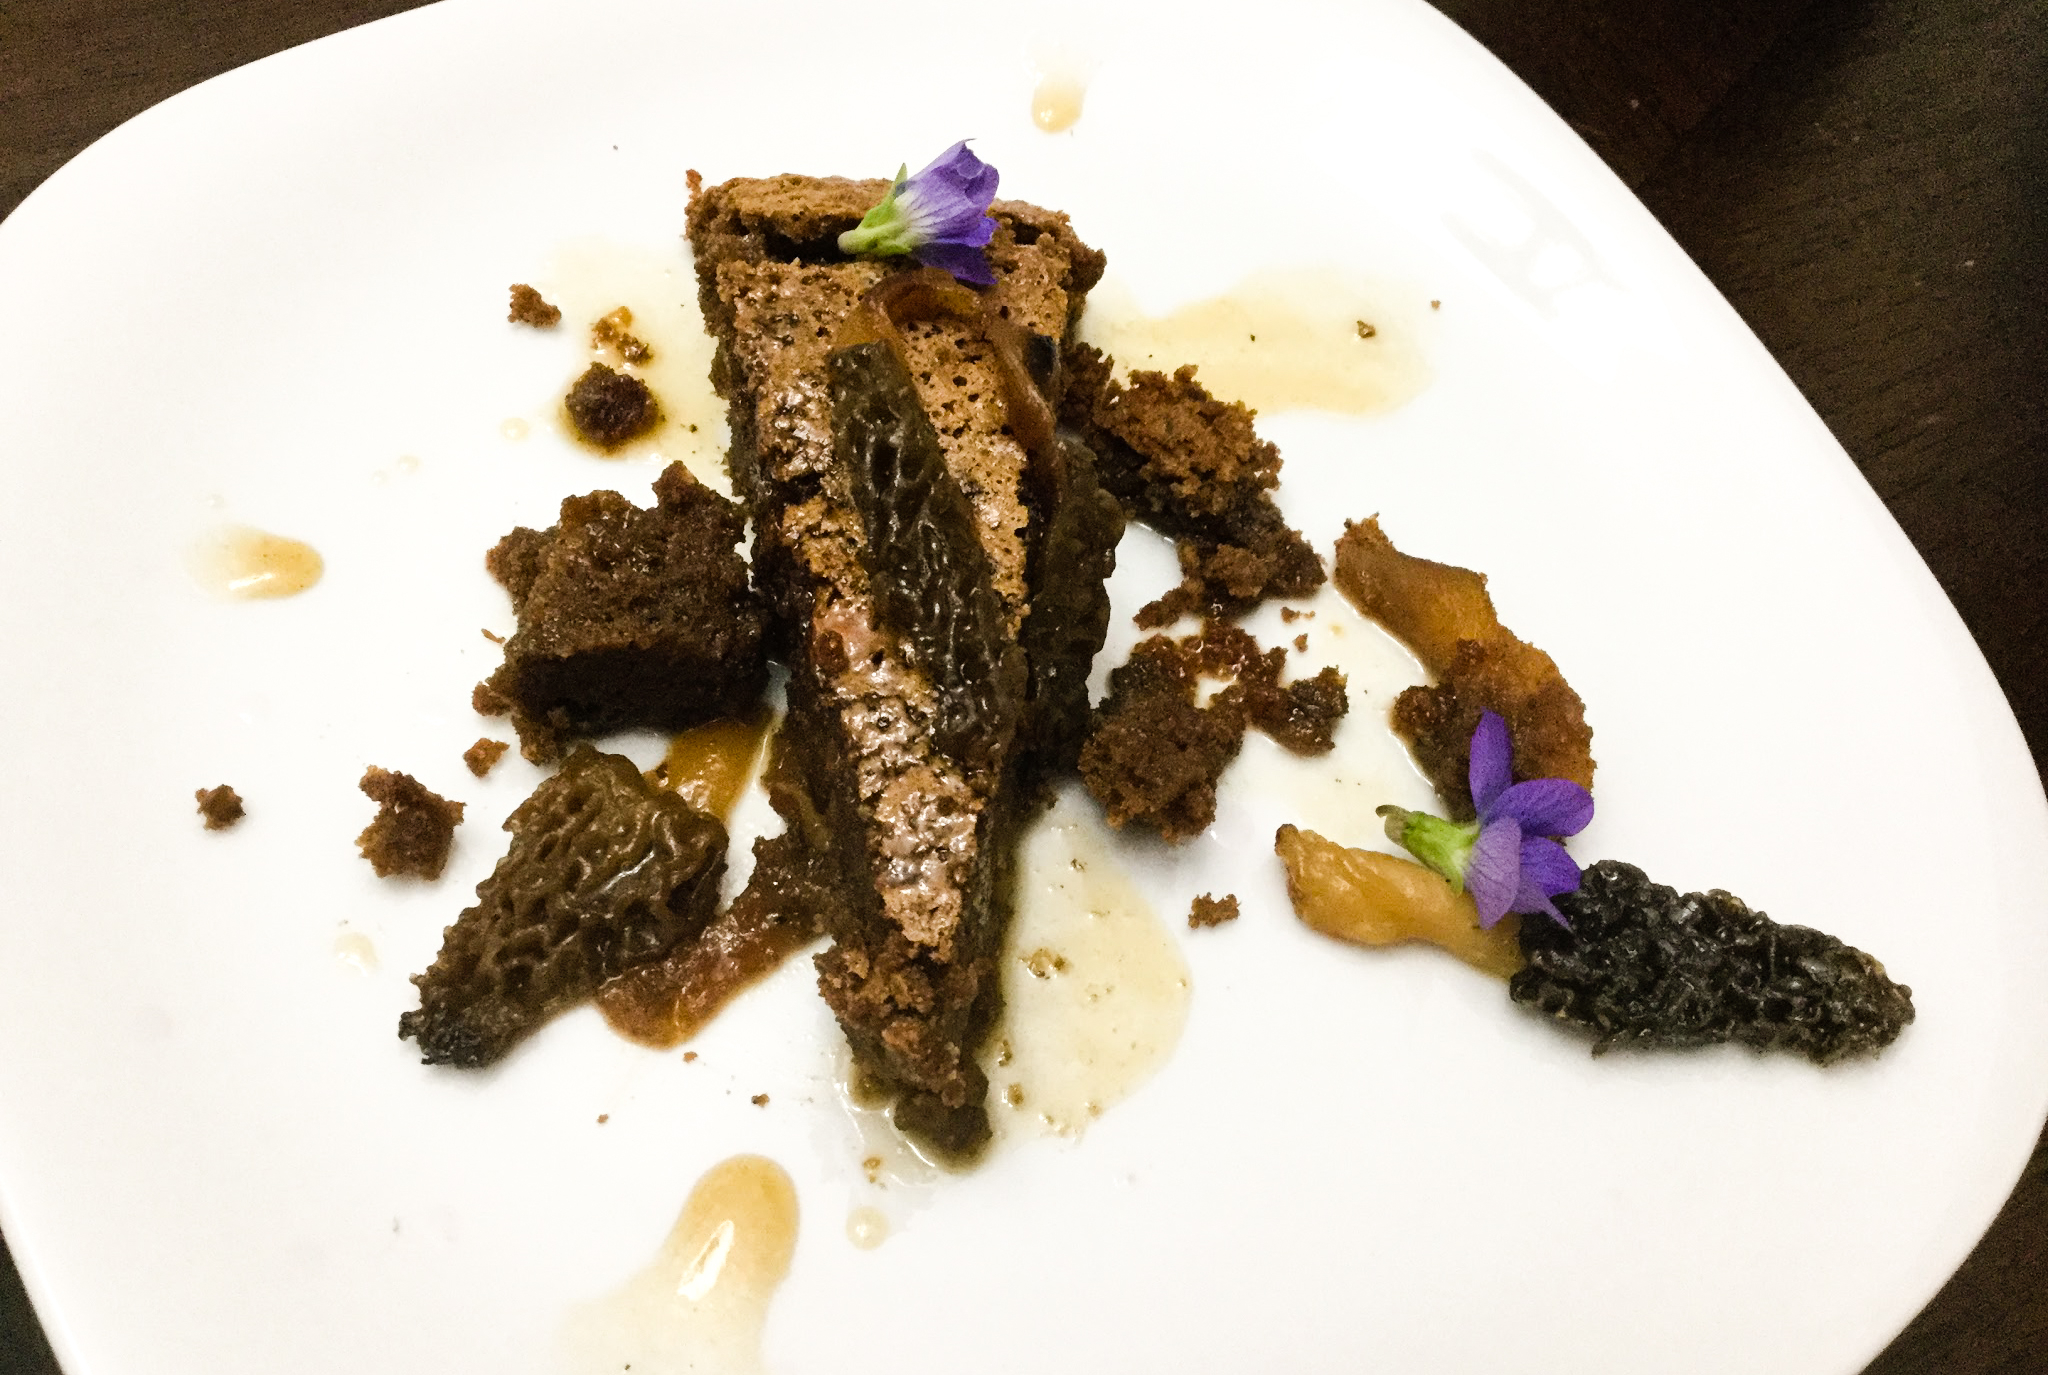 Morel mushrooms for dessert? Yep. The Tyrant's candied morel mushroom torte with maple butter glaze and violas was so dang delicious. Morel mushrooms.